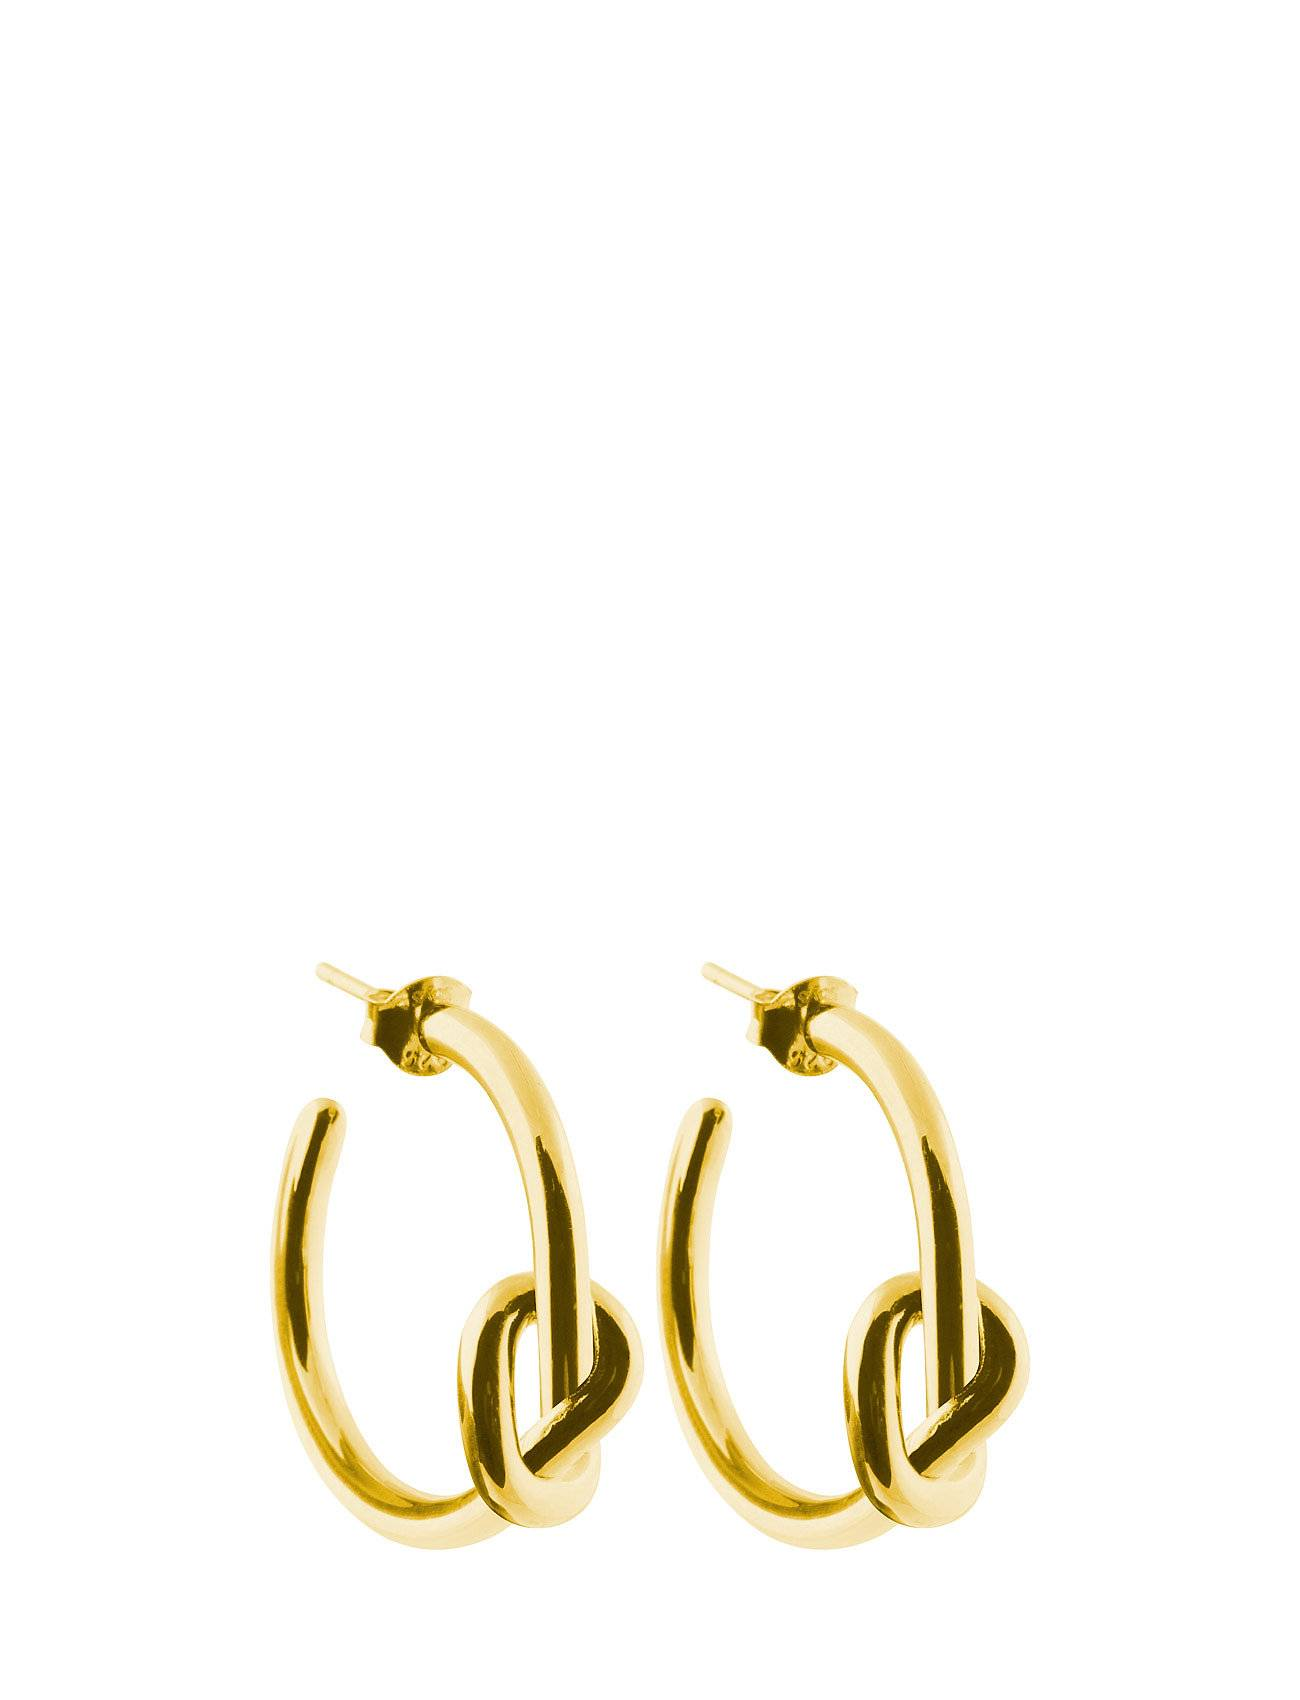 SOPHIE by SOPHIE Knot Hoops